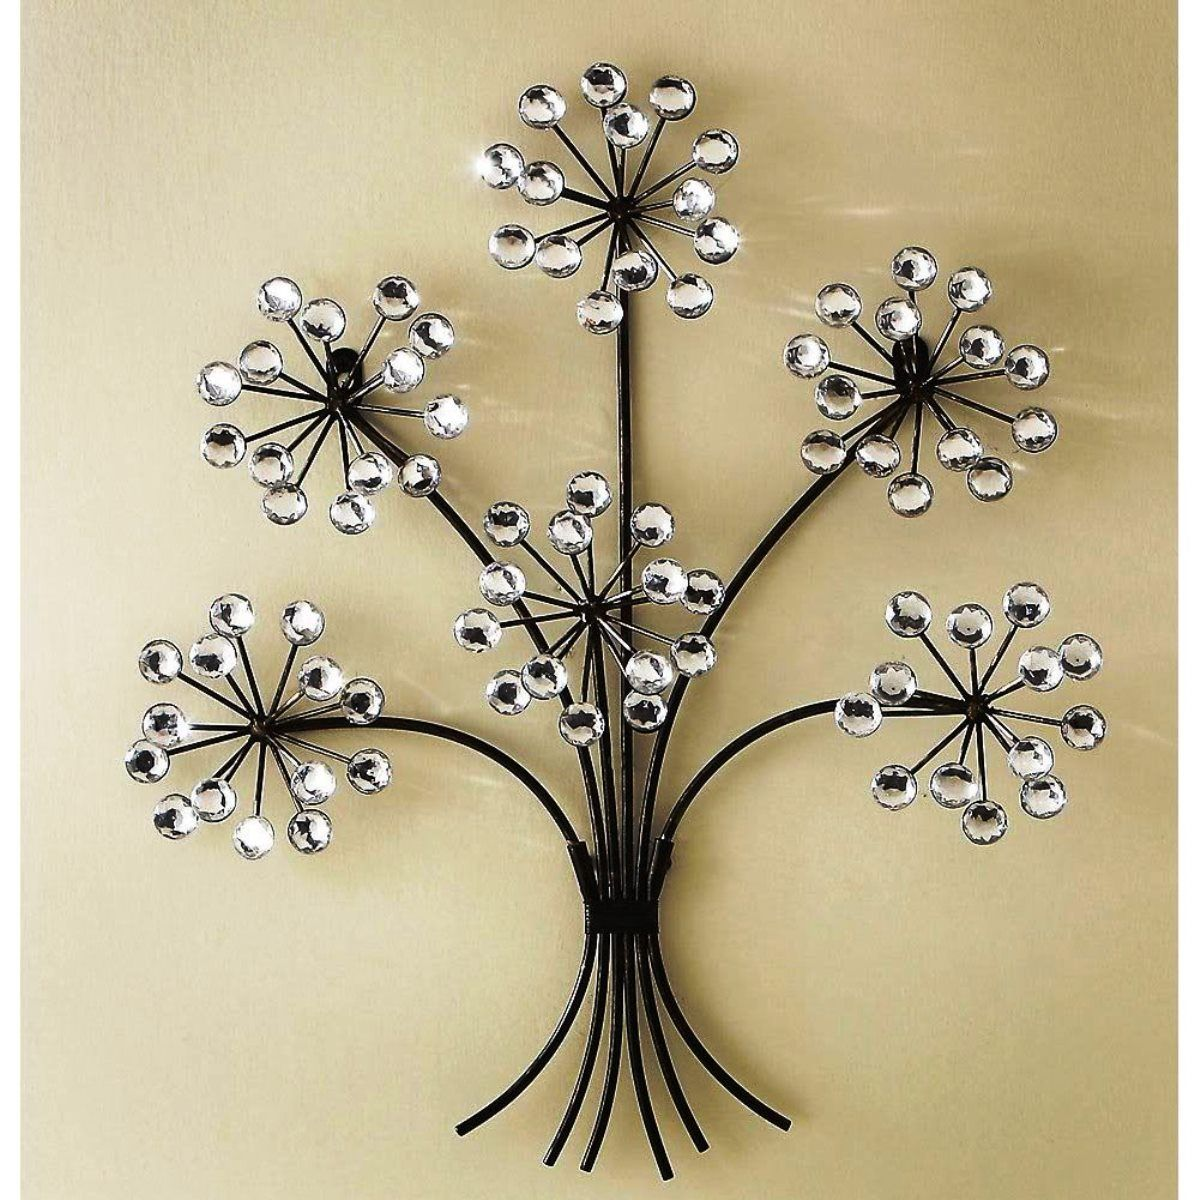 Metal Wall Decorating | Wall Art Decor | Pinterest | Metal walls ...